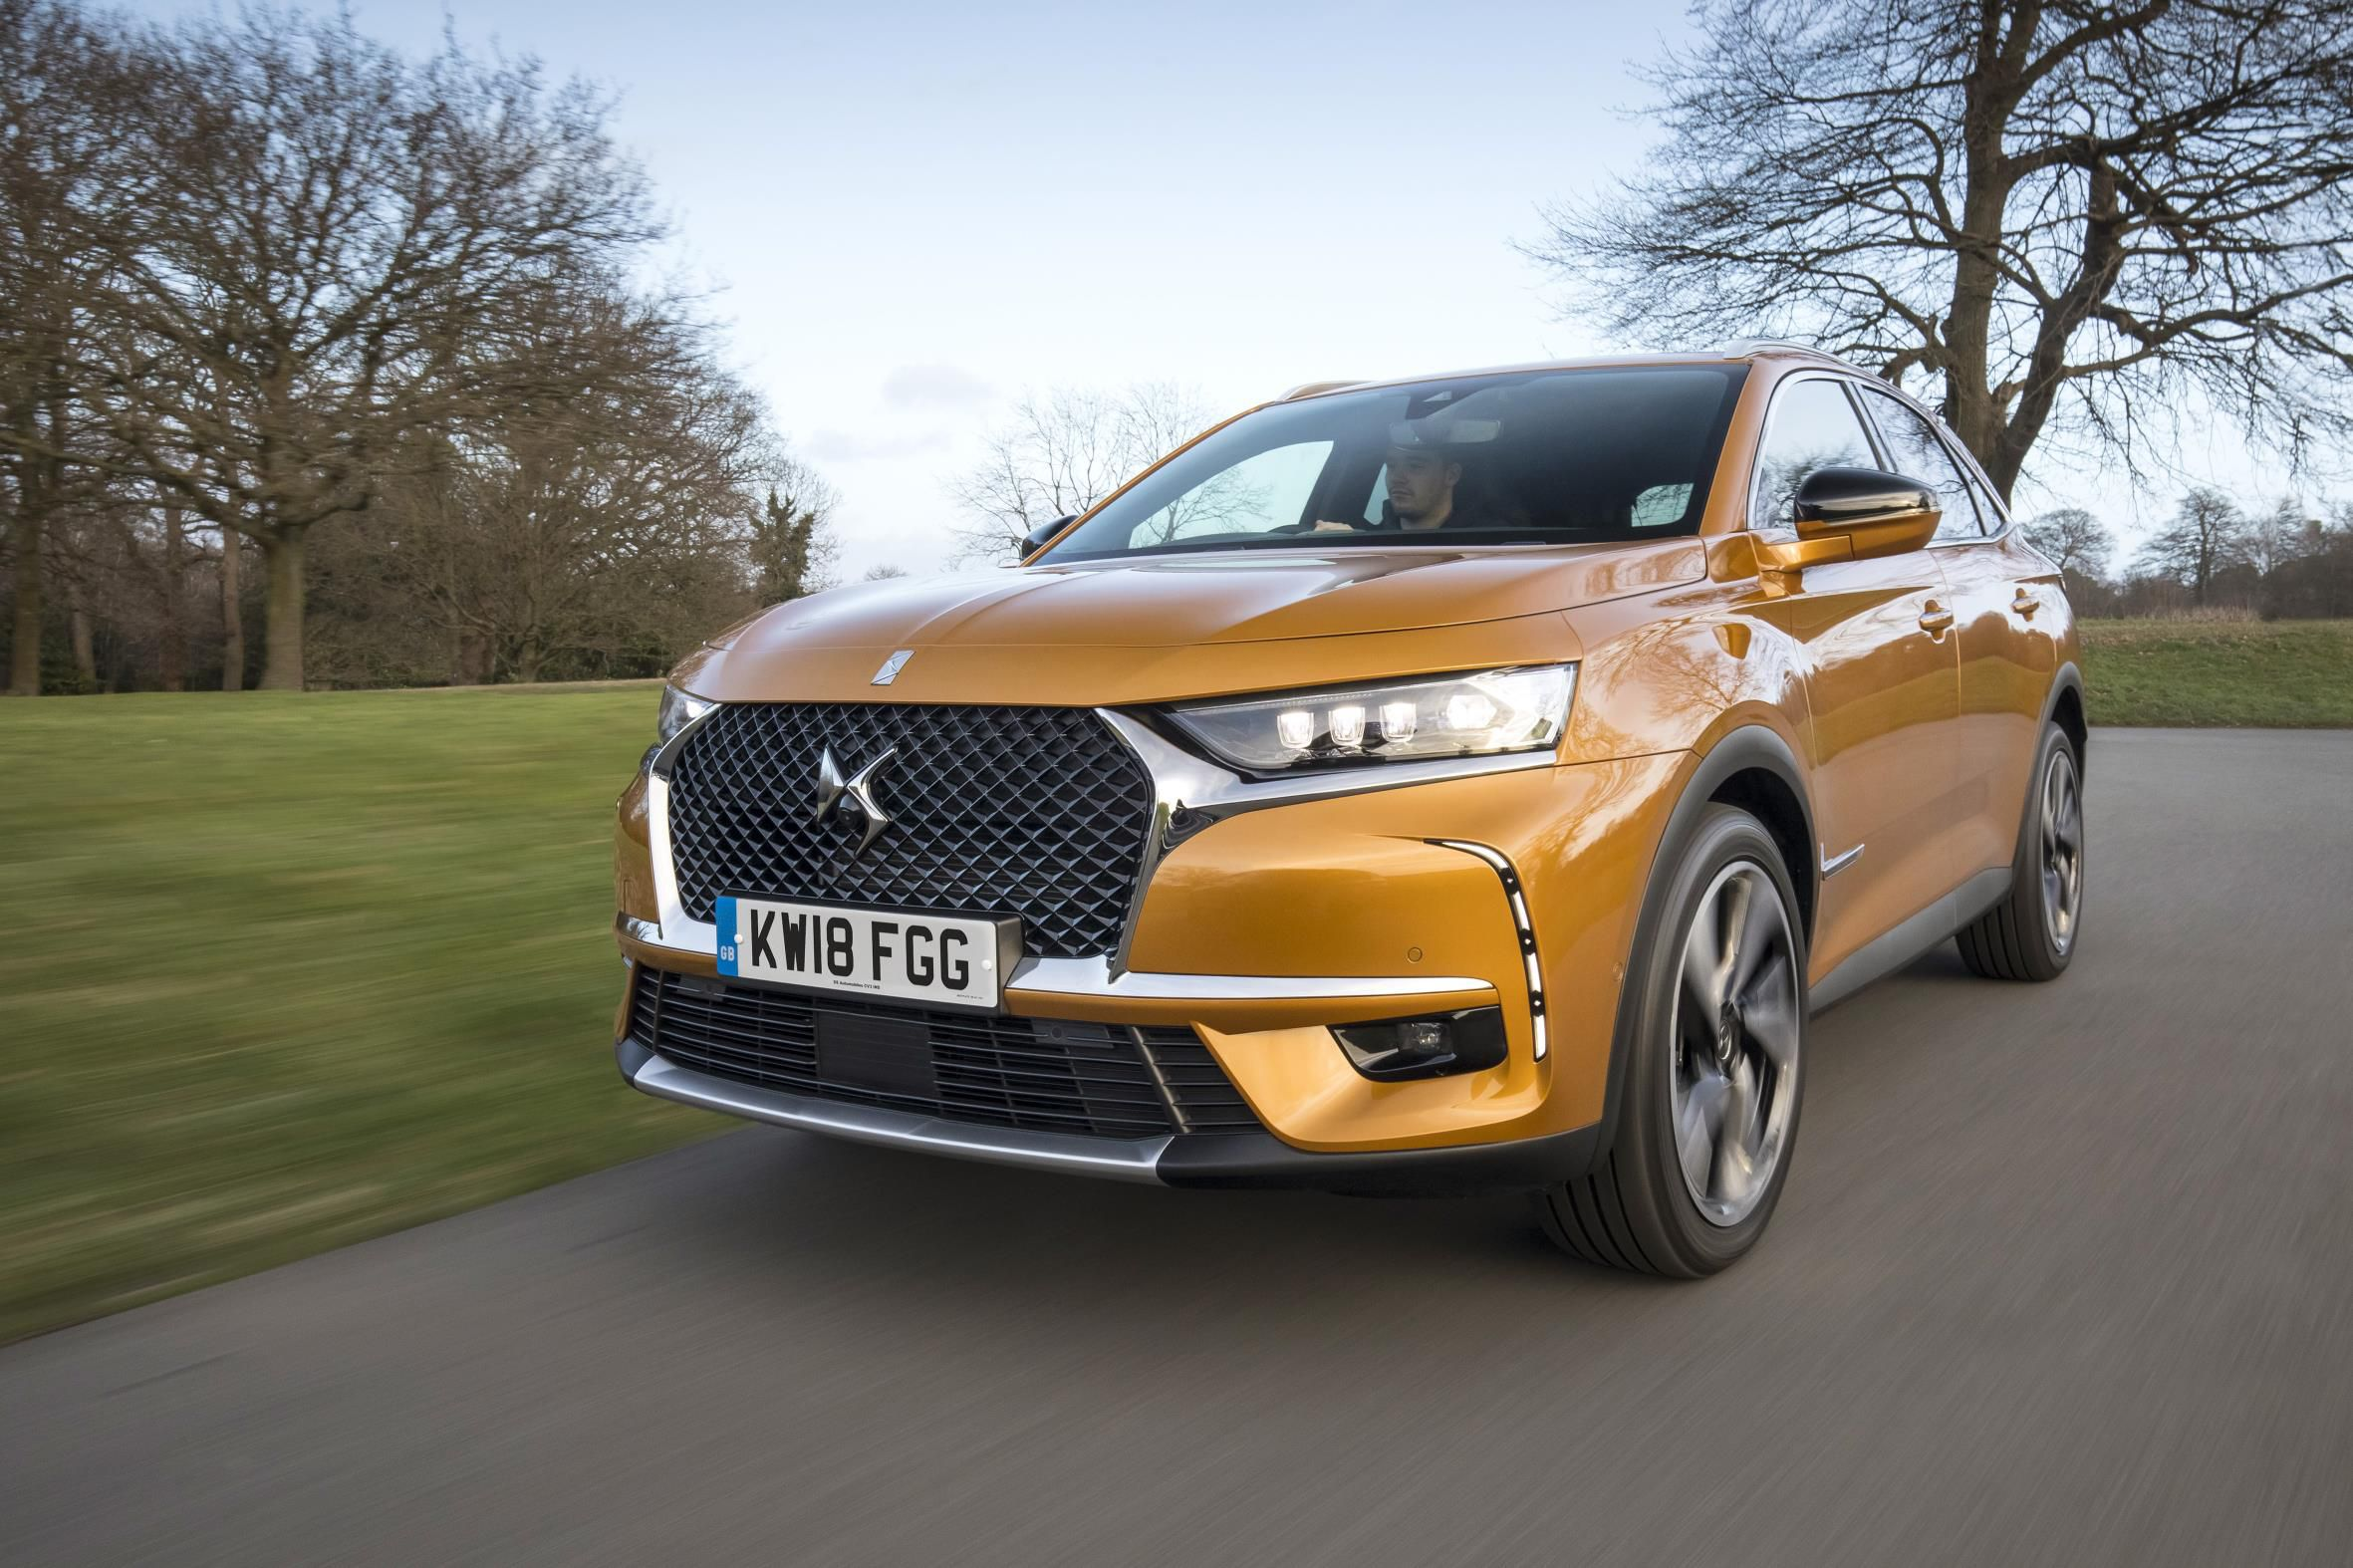 DS7 Crossback in metallic orange driving through the country